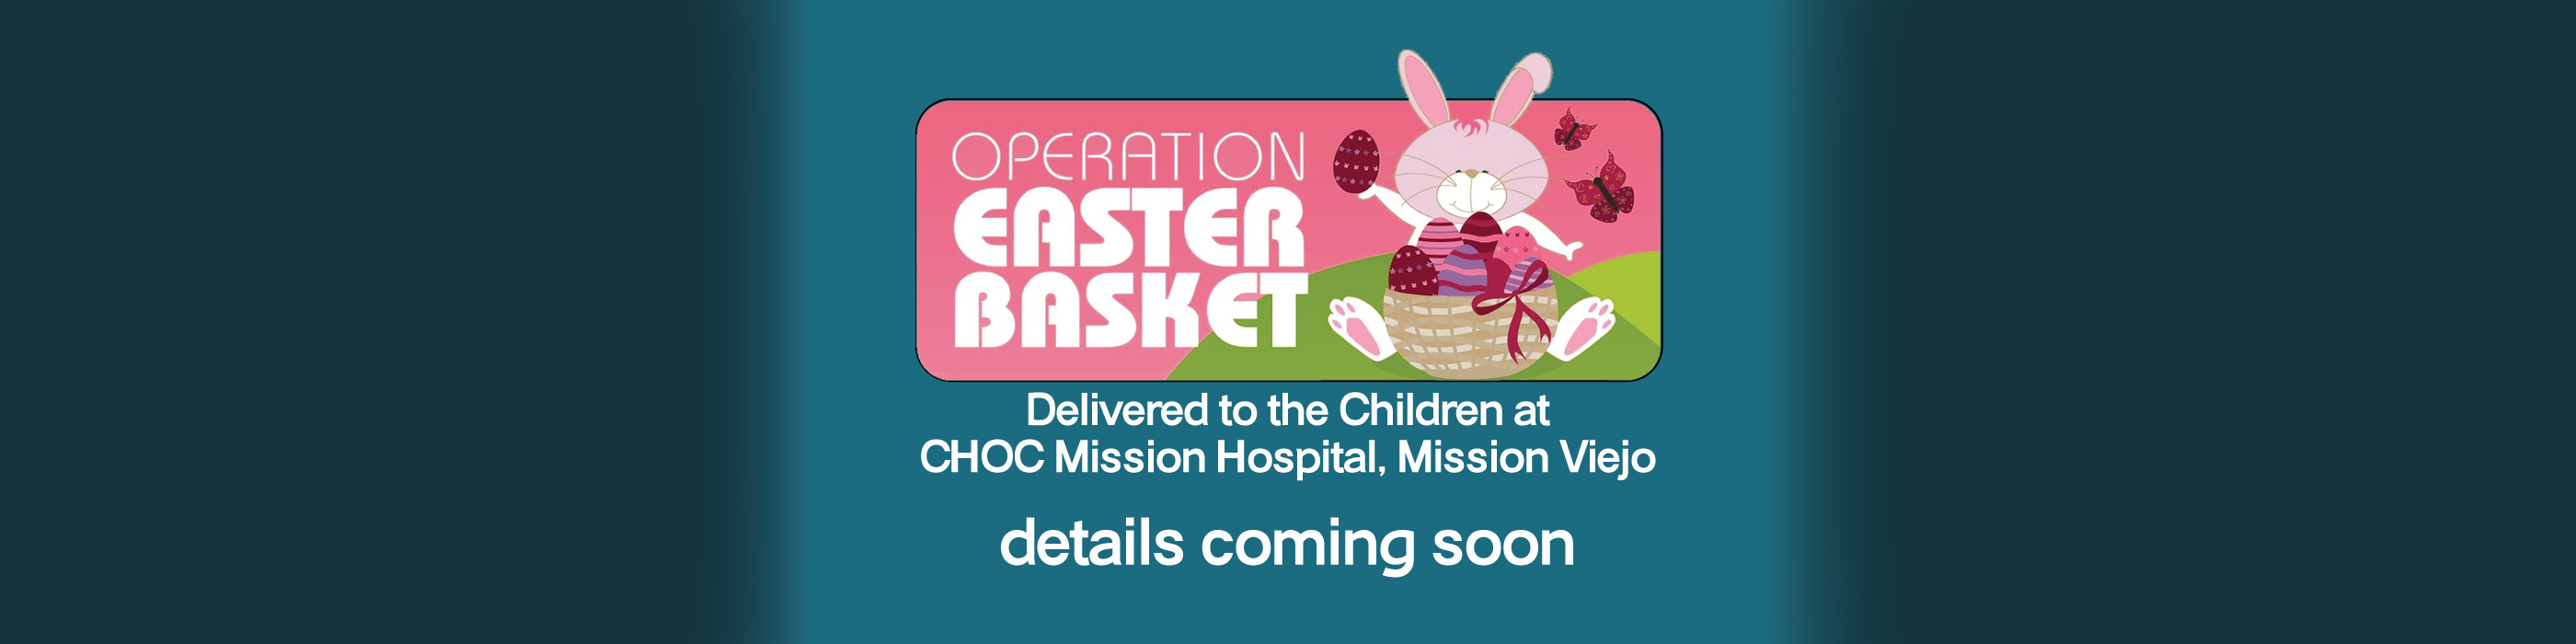 Summit-Church-Bulletin-Graphic-Operation-Easter-Basket-WEB-2800x700